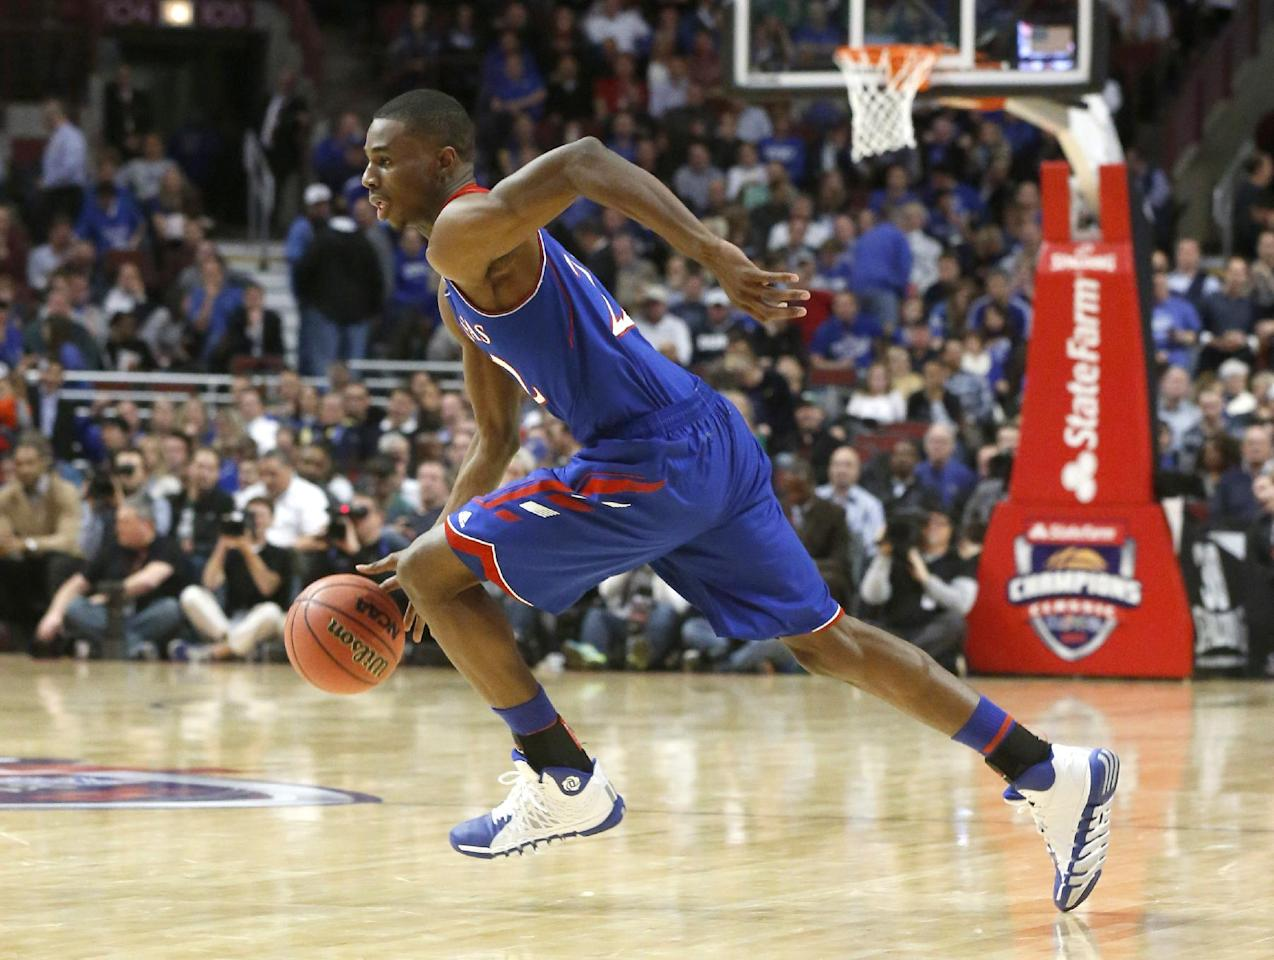 Kansas guard Andrew Wiggins drives to the basket during the second half of an NCAA college basketball game against Duke, Tuesday, Nov. 12, 2013, in Chicago. (AP Photo/Charles Rex Arbogast)